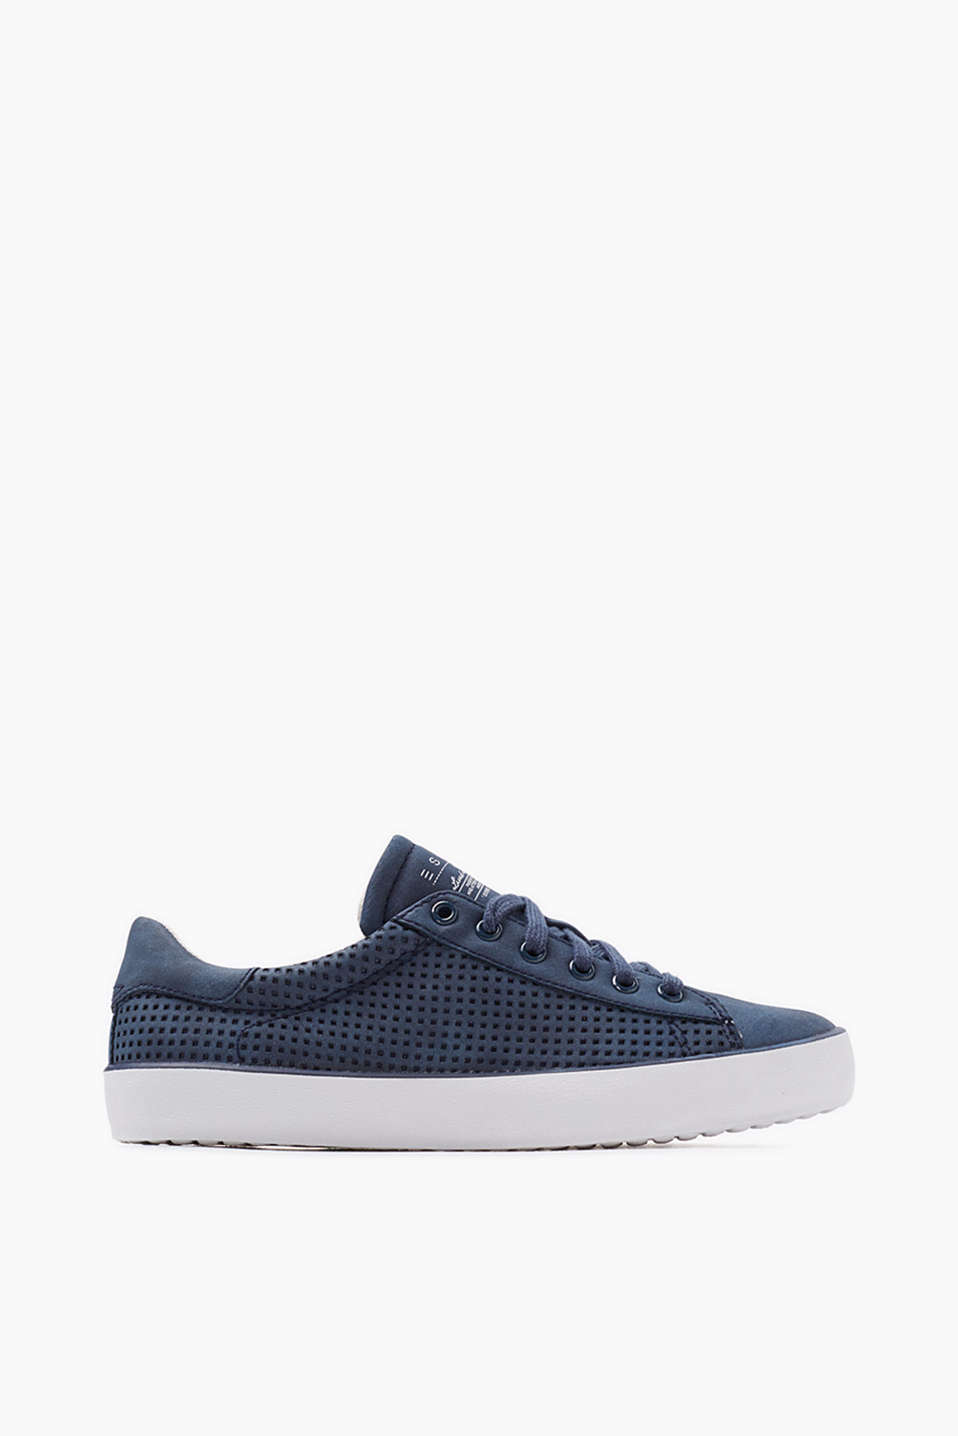 Basic trainers with stylish perforation, from vegan manufacturing